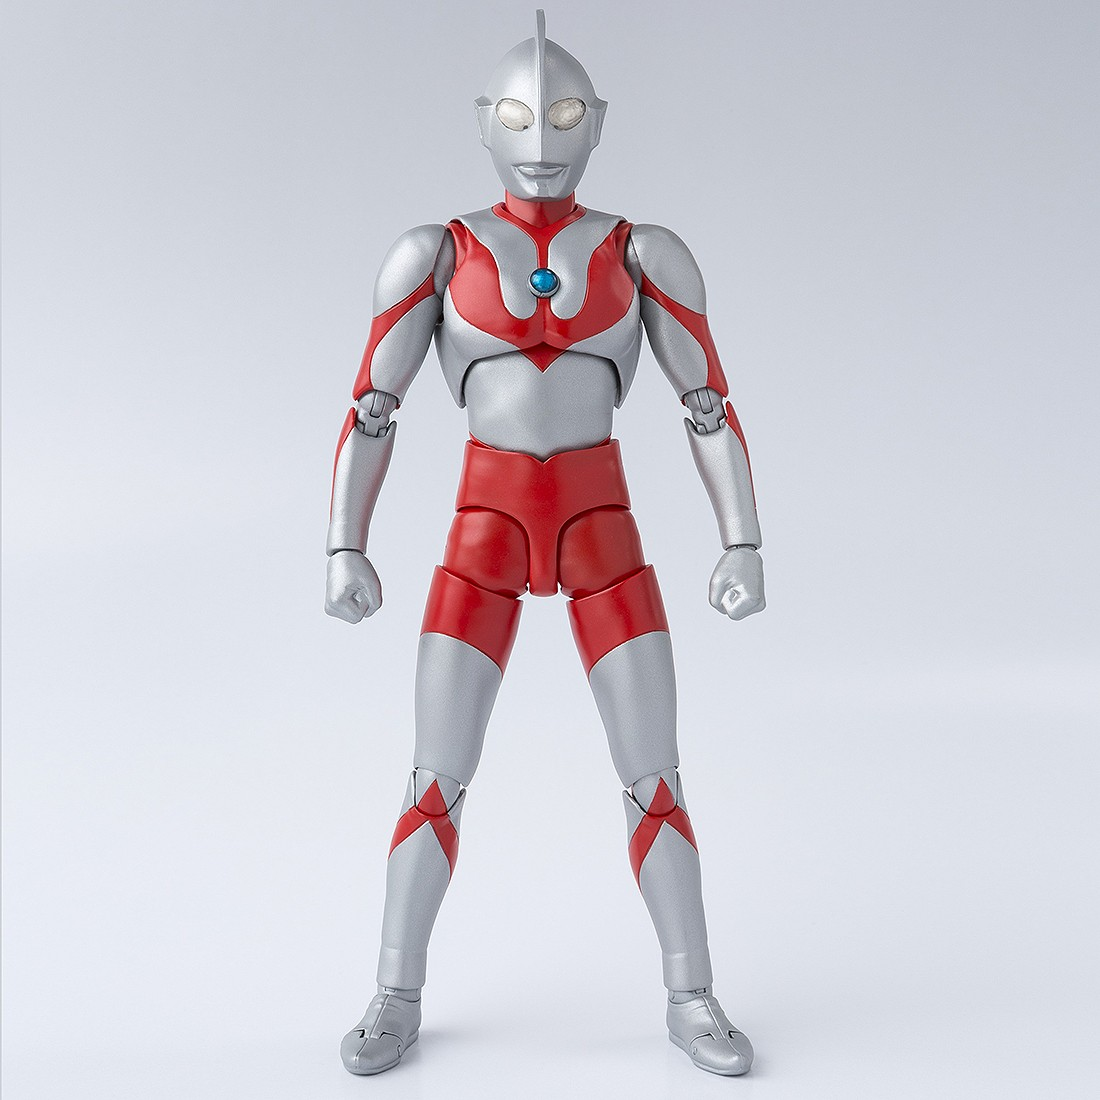 PREORDER - Bandai S.H. Figuarts Ultraman Best Selection Figure (silver)